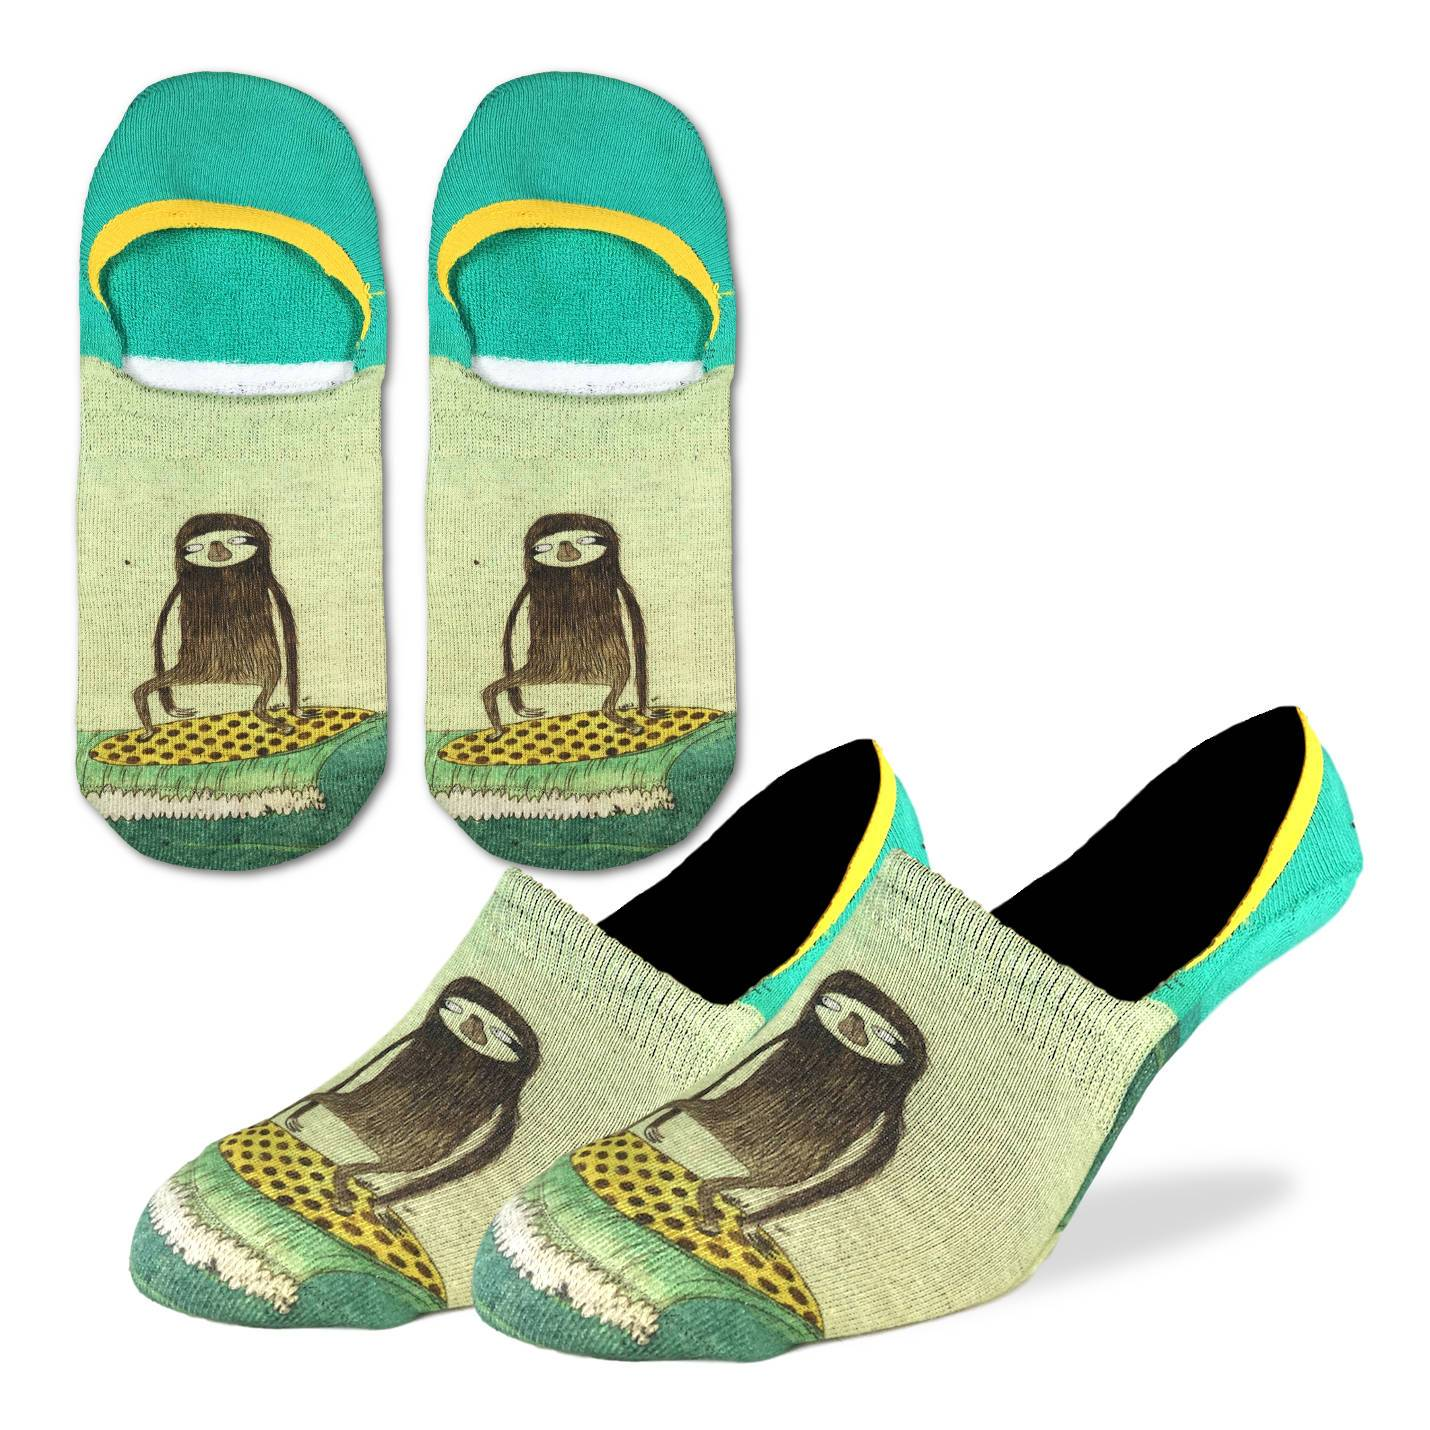 Men's Surfing Sloth No Show Socks - Good Luck Sock